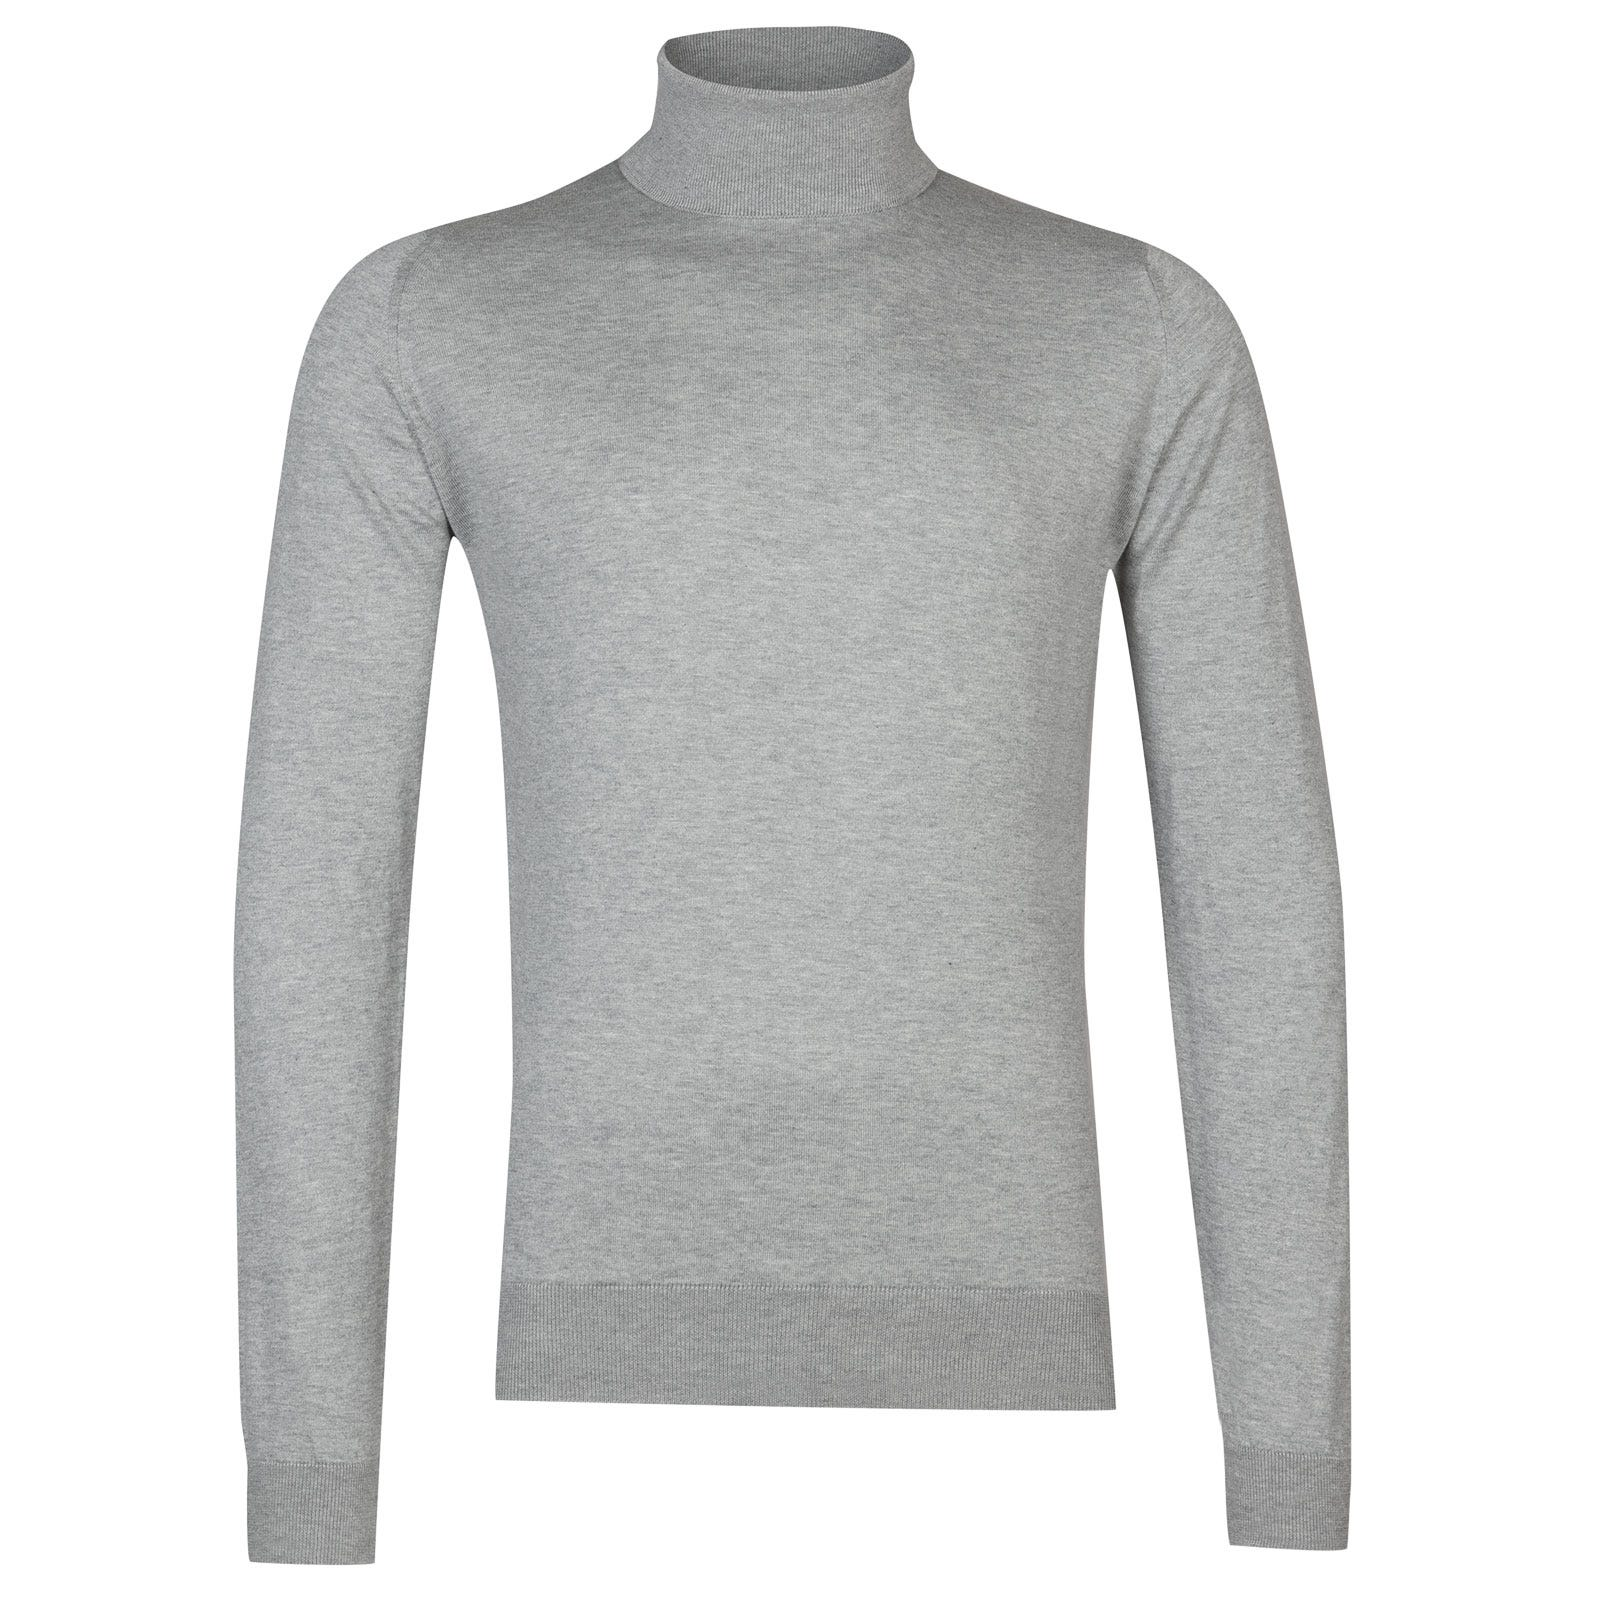 John Smedley Hawley Sea Island Cotton Pullover in Silver-M